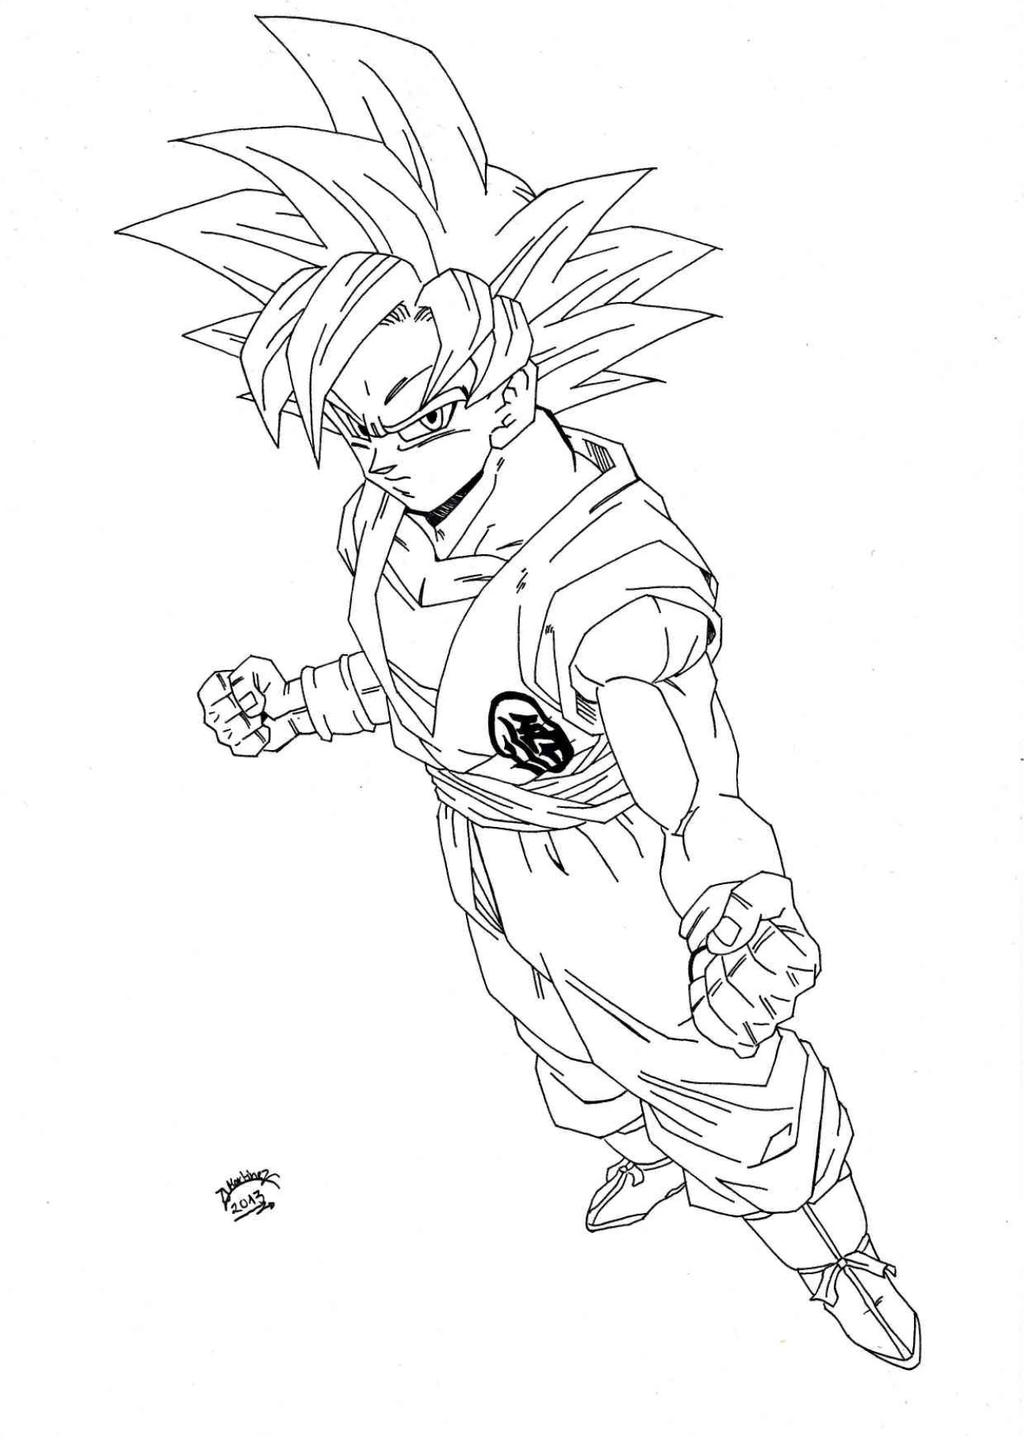 Dragonball z super sayan god lineart by triigun on for Dbz coloring page